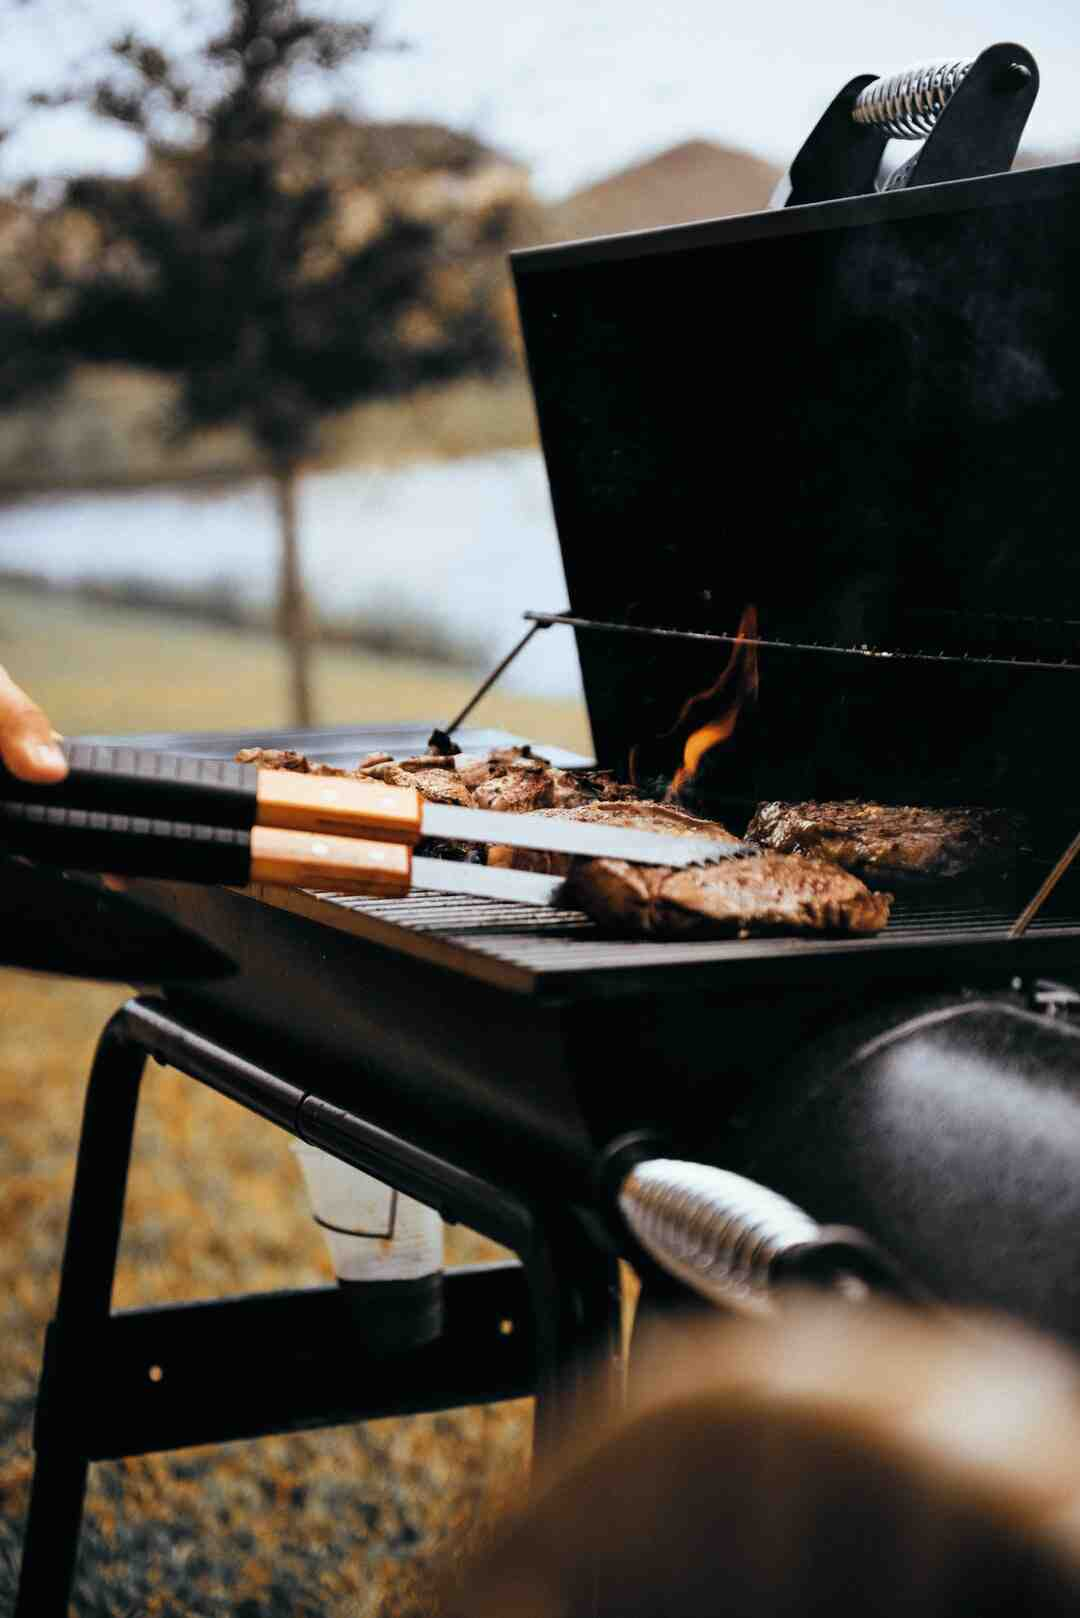 How do I know if my tri-tip is done without a thermometer?